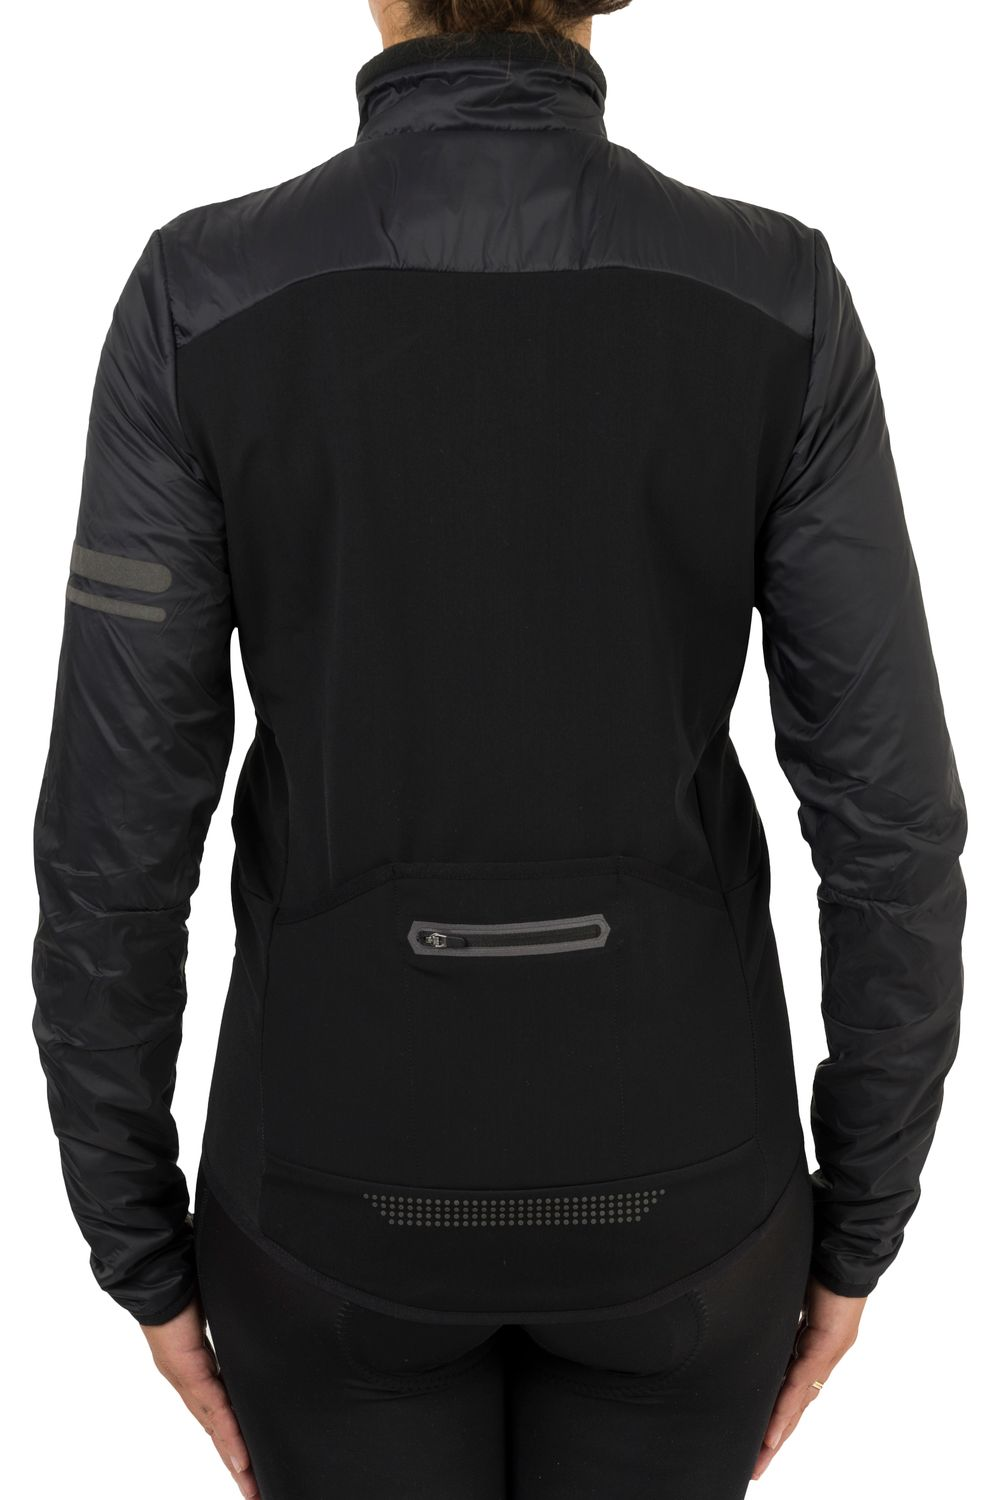 Thermojack Essential Dames fit example